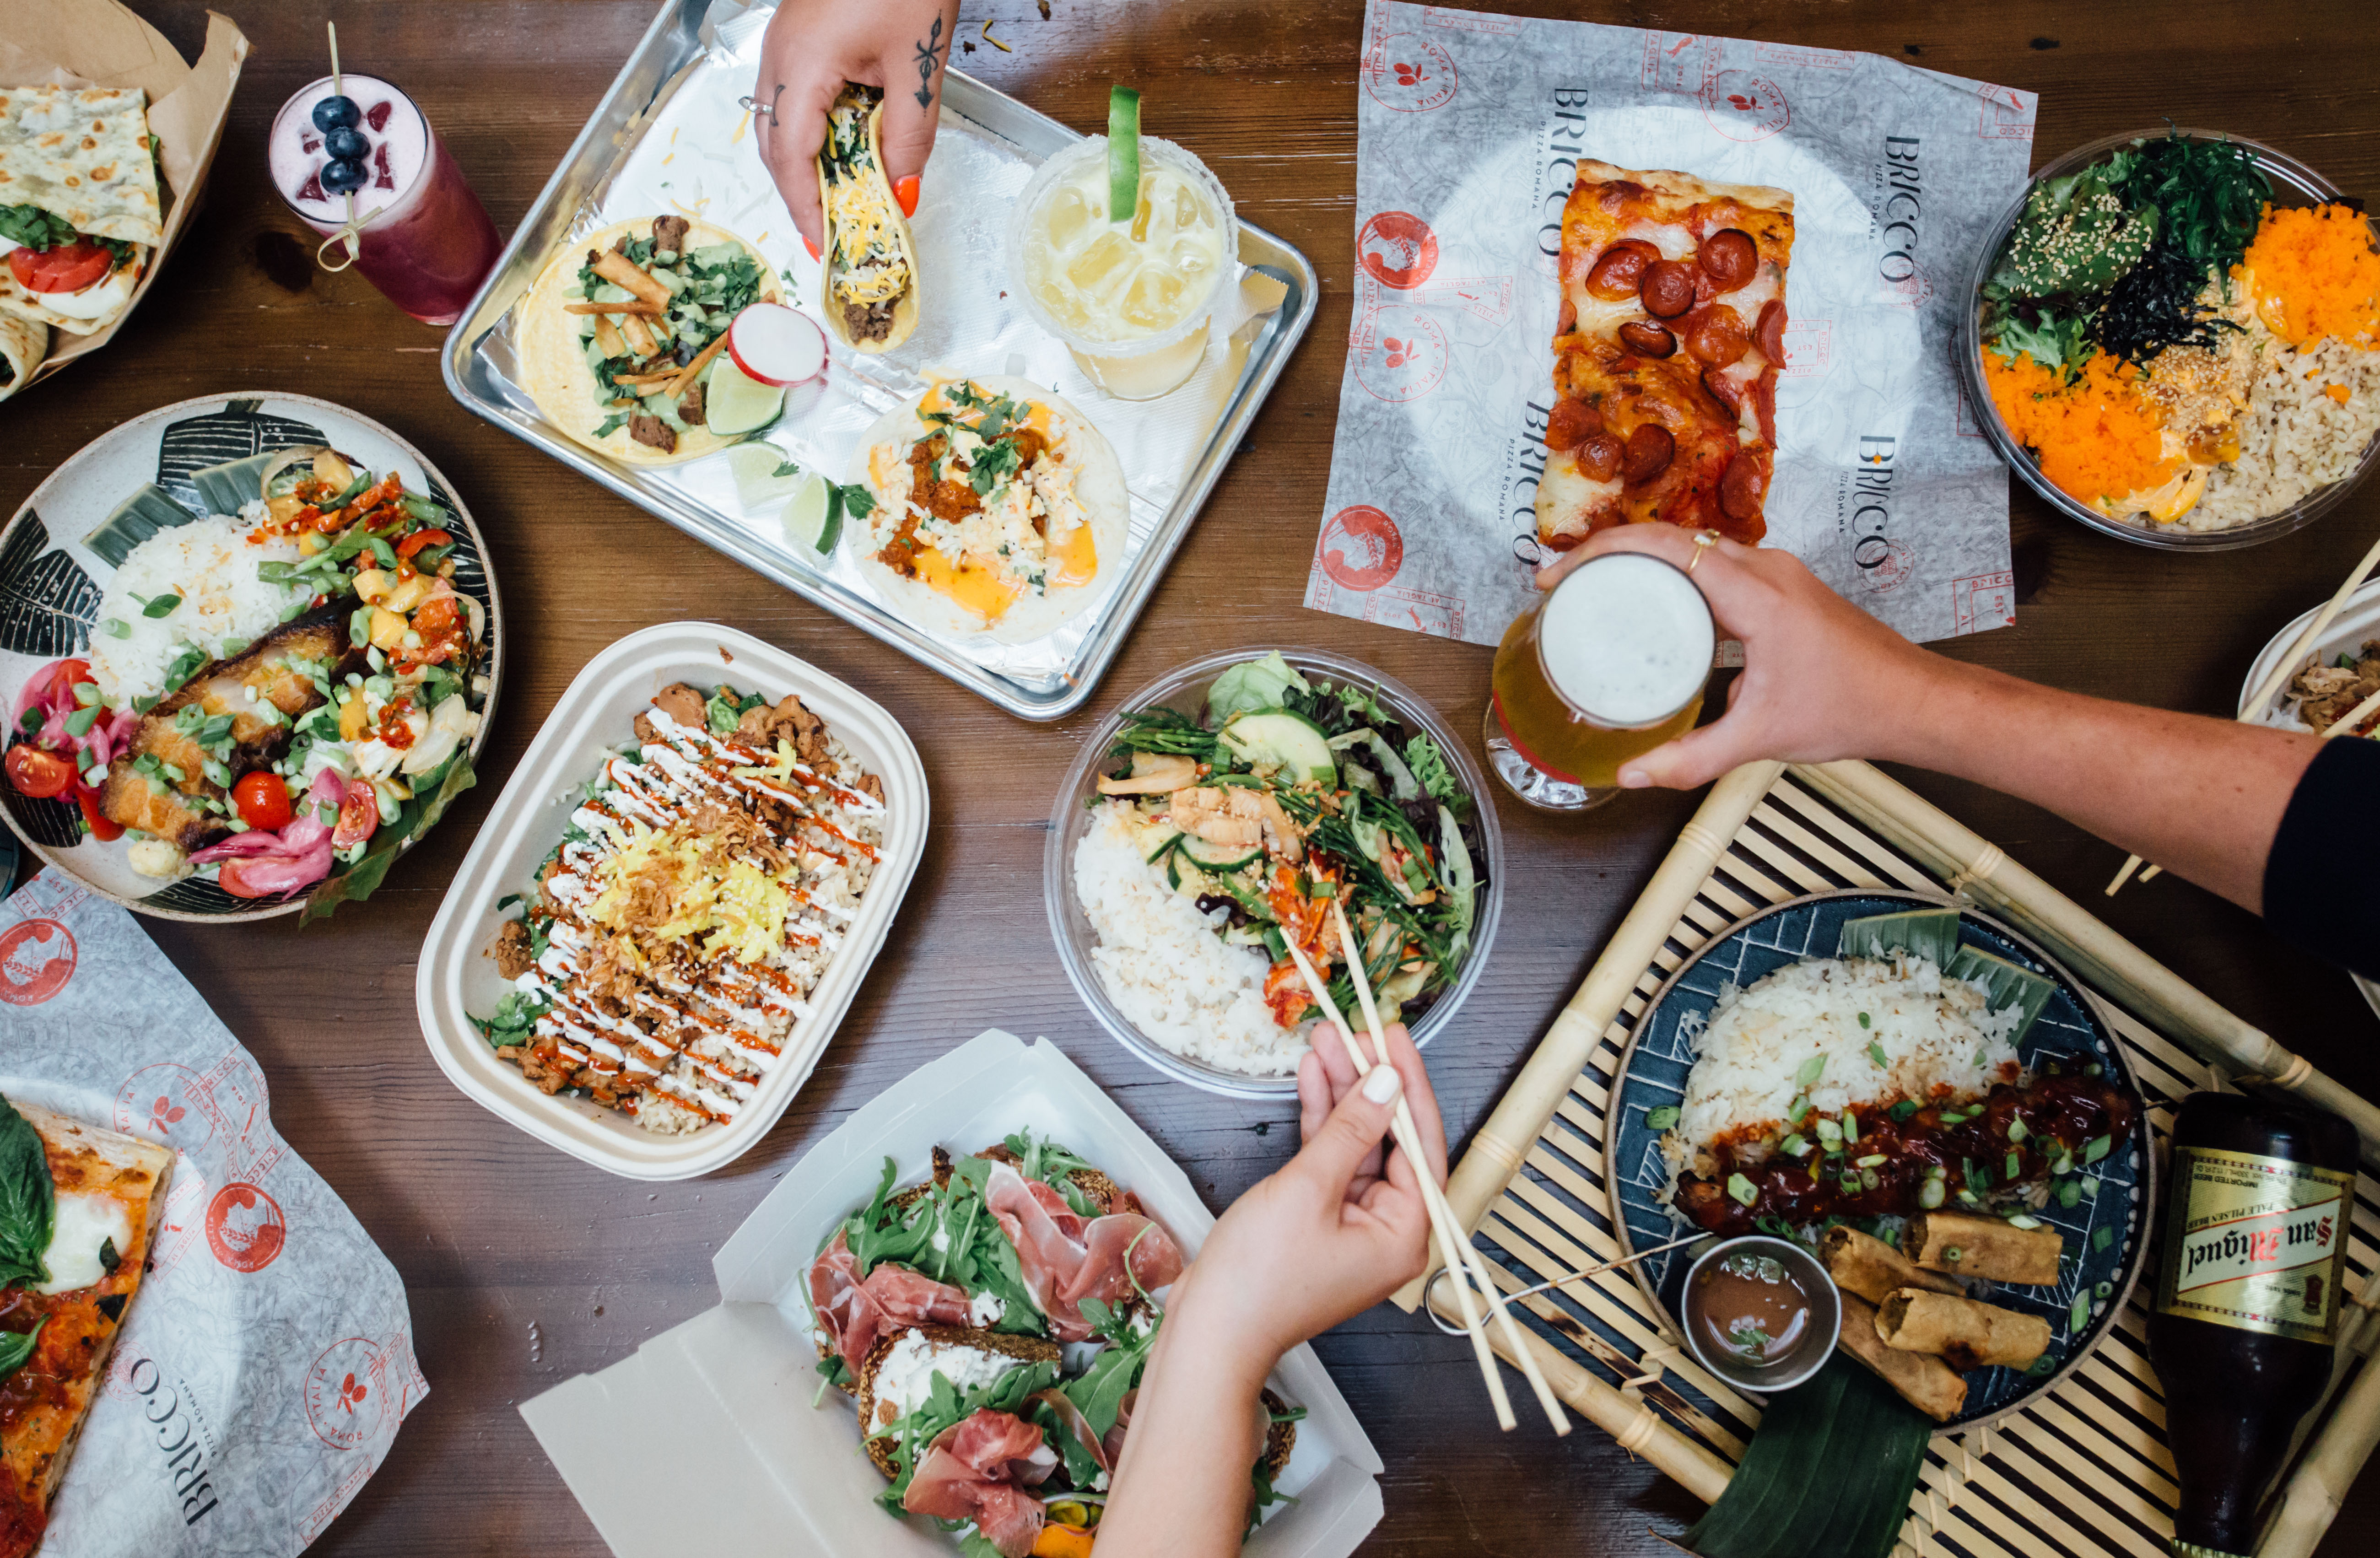 overhead shot of several plates of food including tacos and pizza